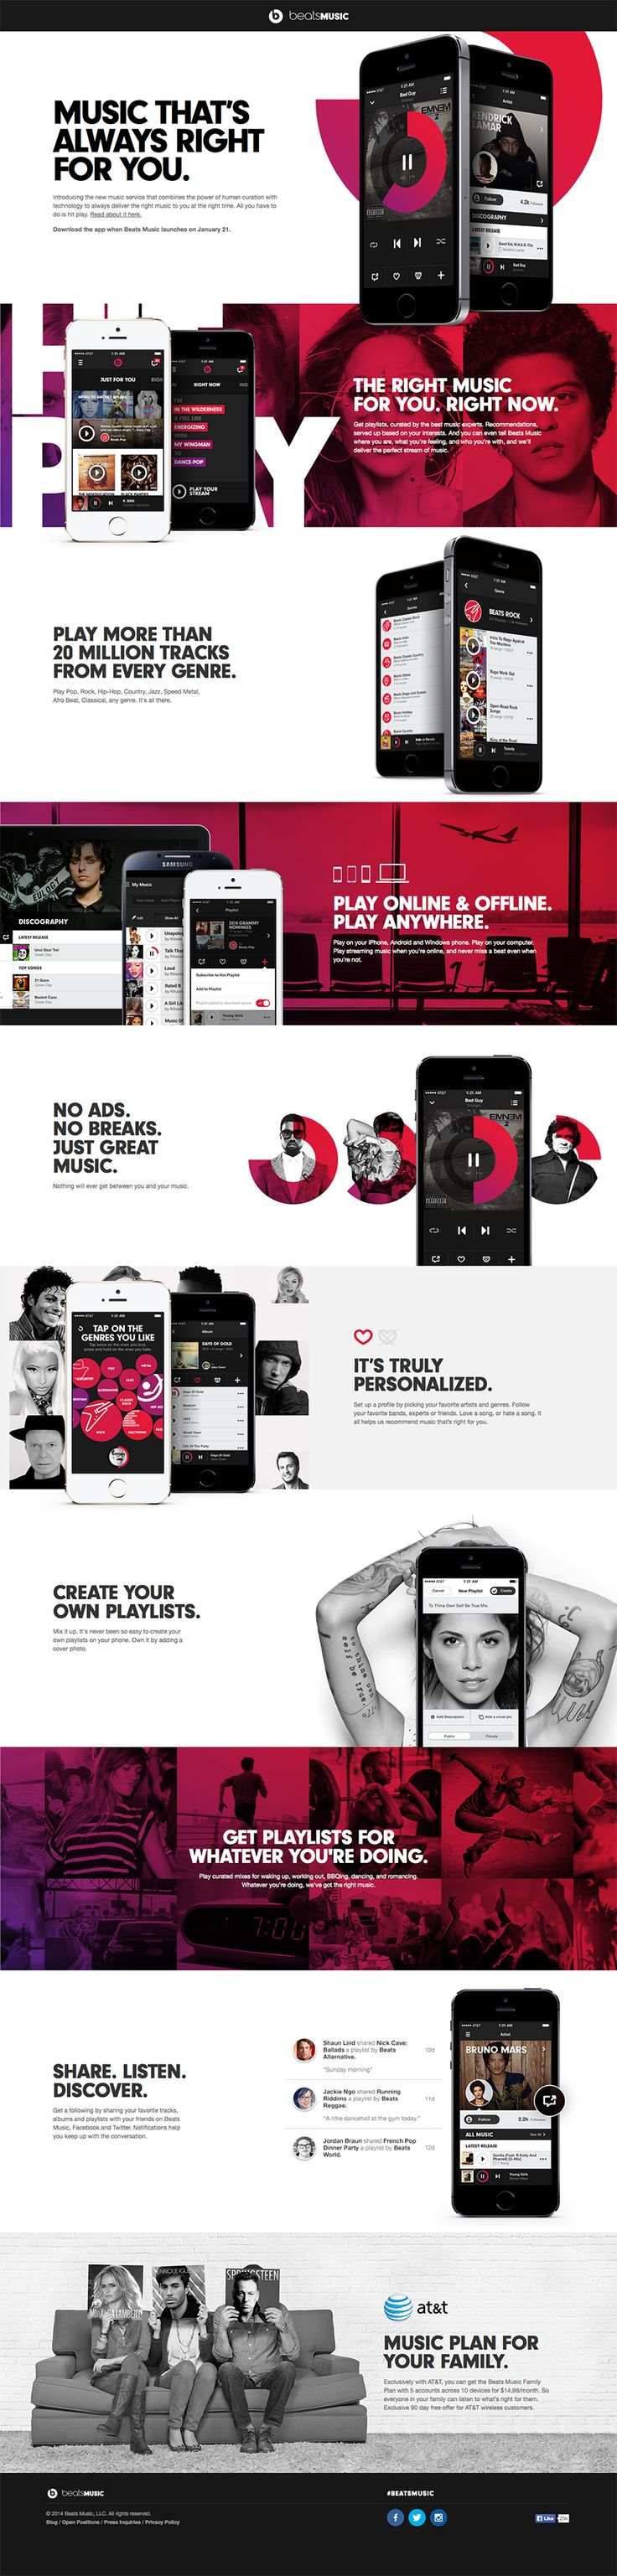 Cool Web Design, beatsmusic. http://www.pinterest.com/alfredchong/] more on…